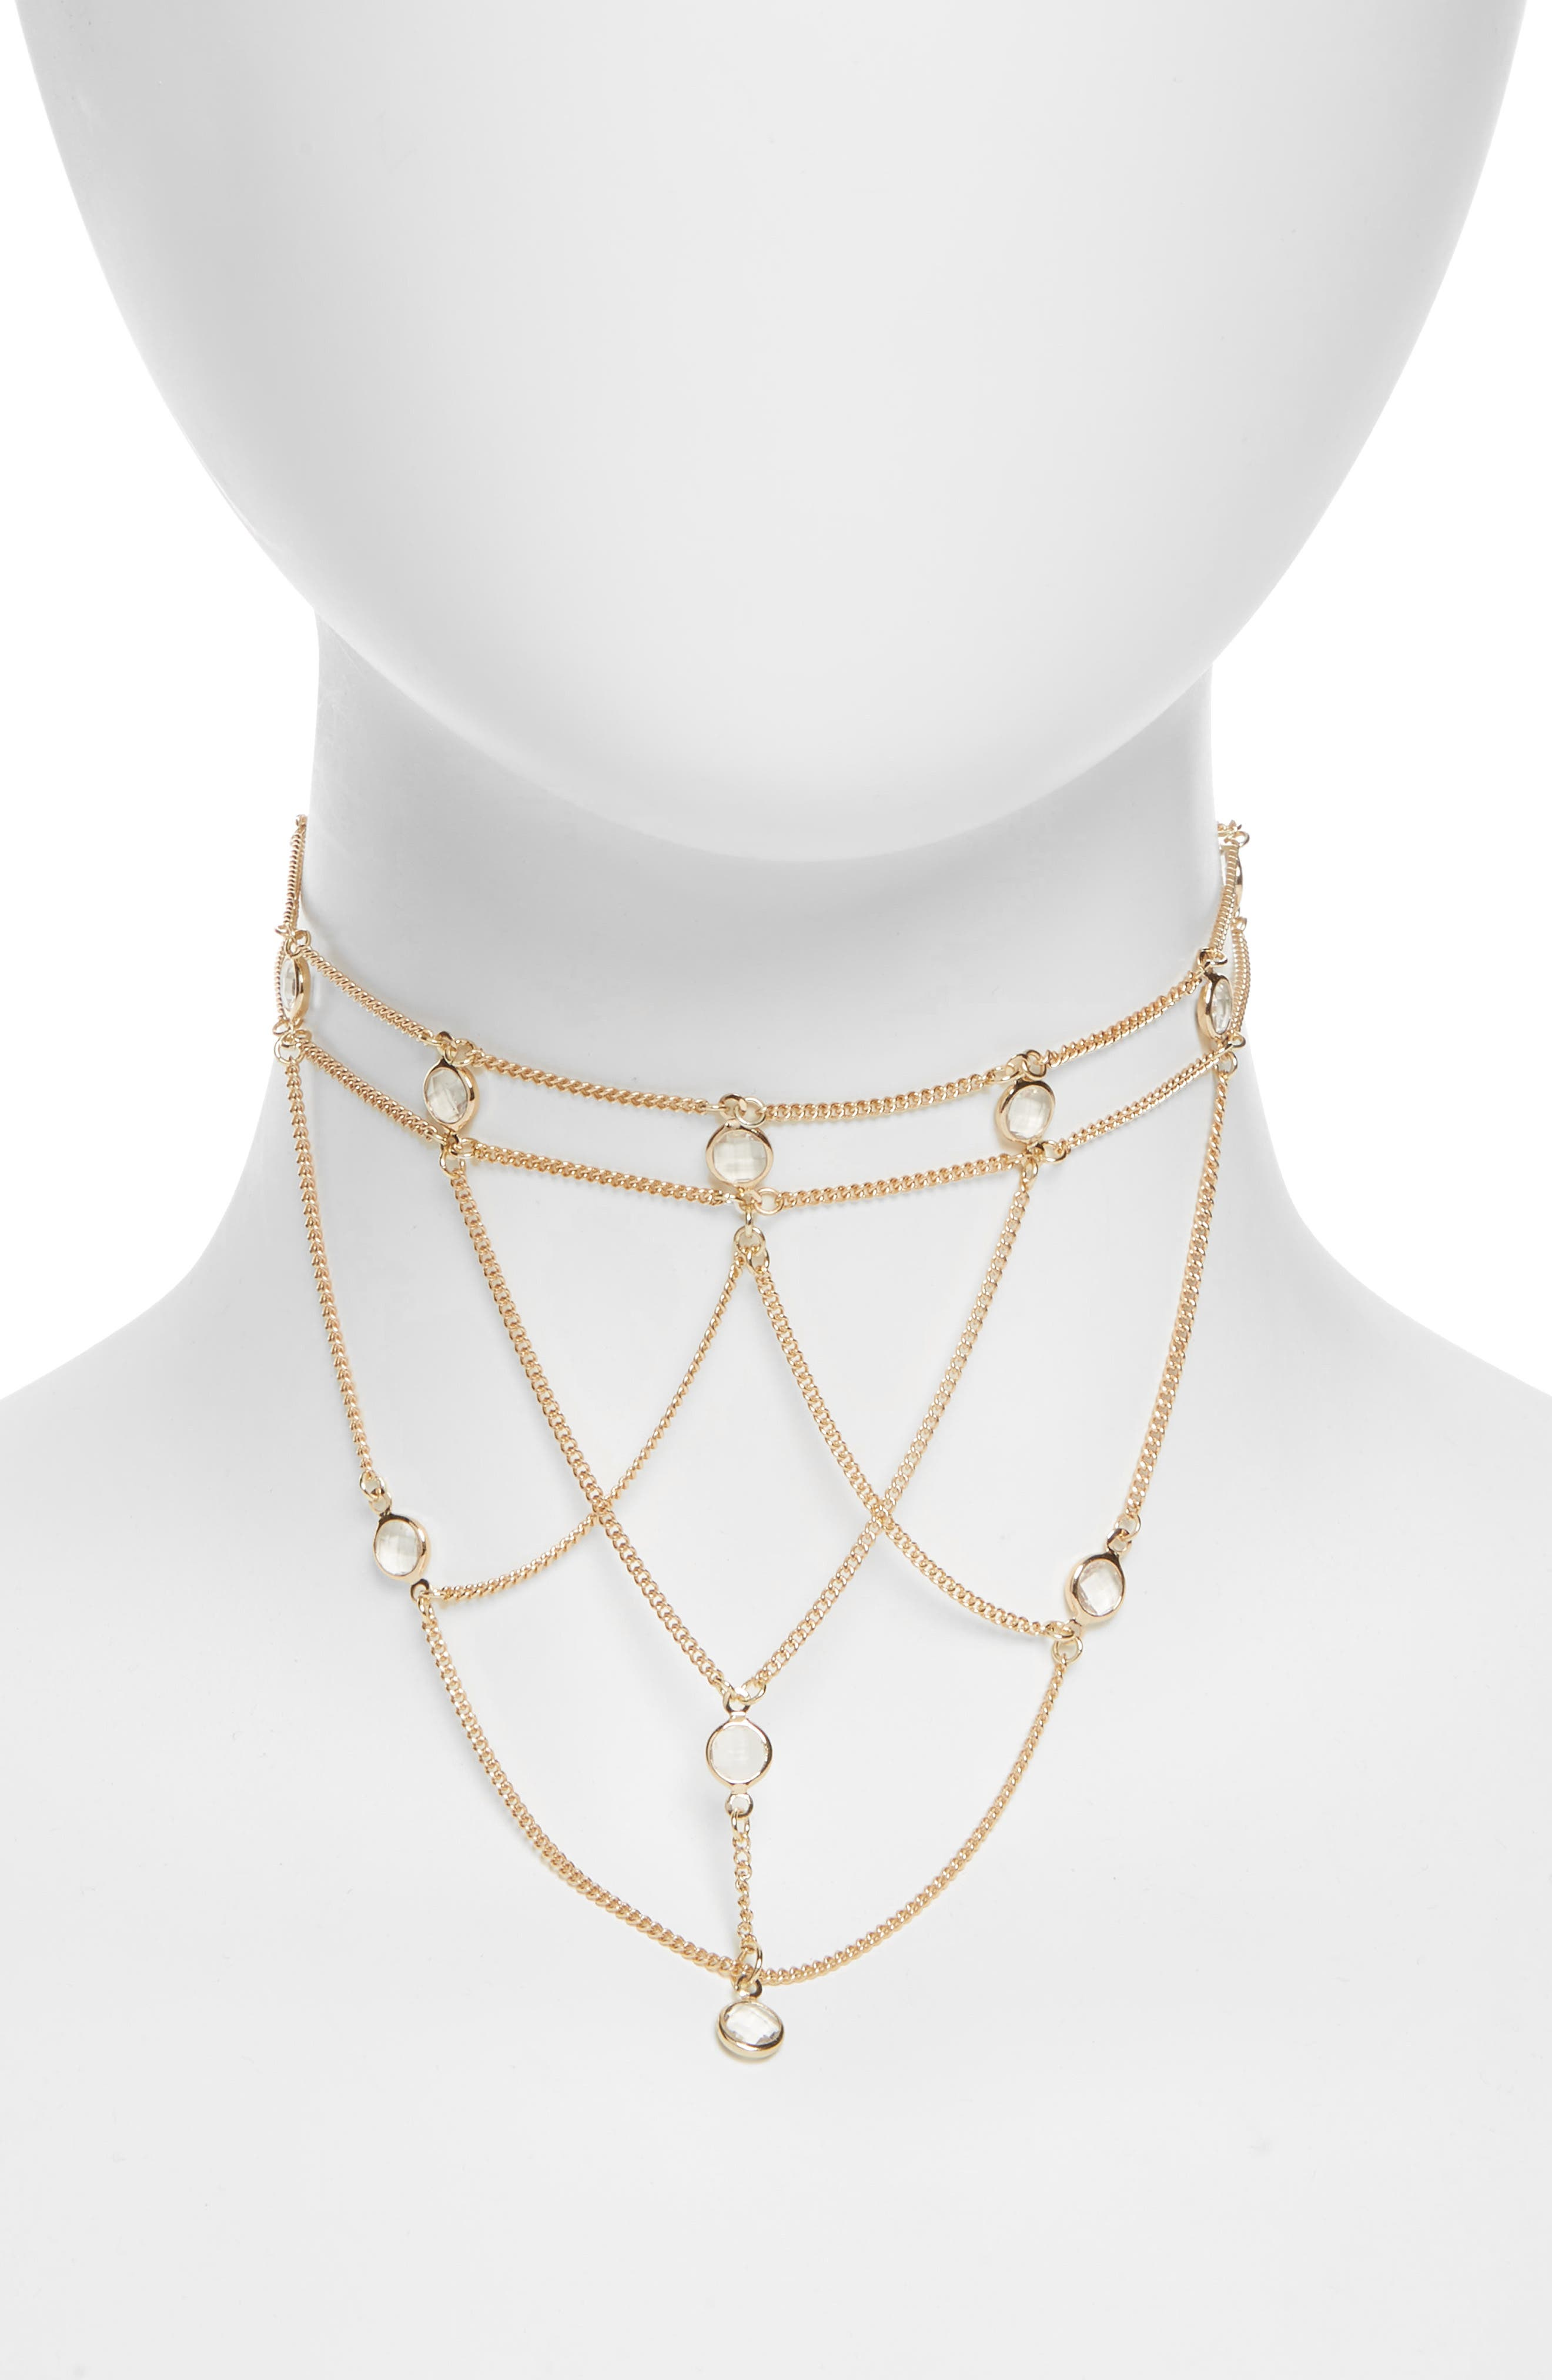 Cage Choker Necklace,                             Main thumbnail 1, color,                             Gold